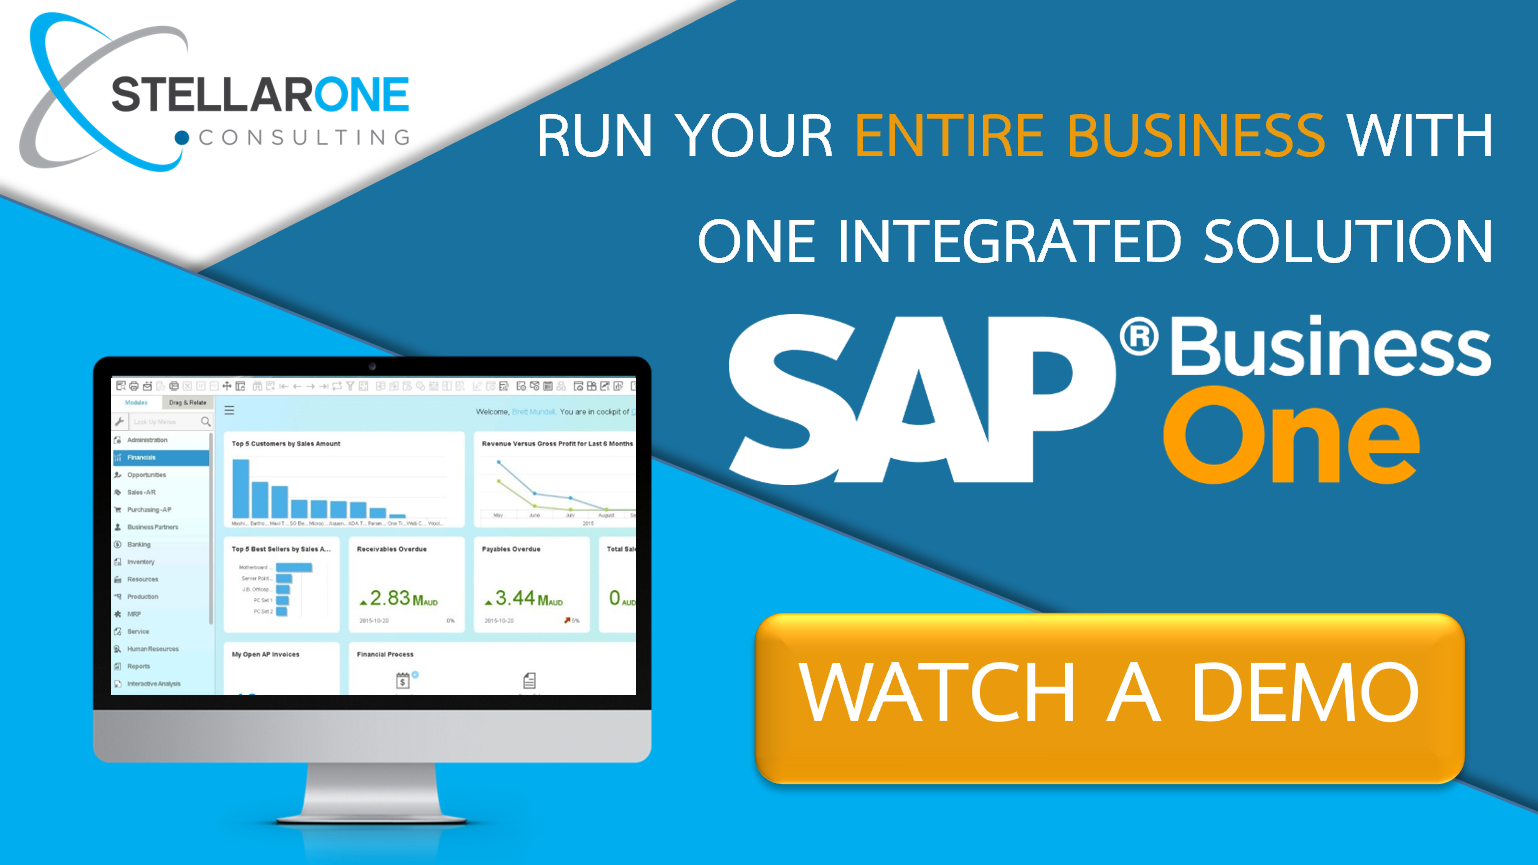 Watch a Demo of SAP Business One Cloud ERP Software with Stellar One